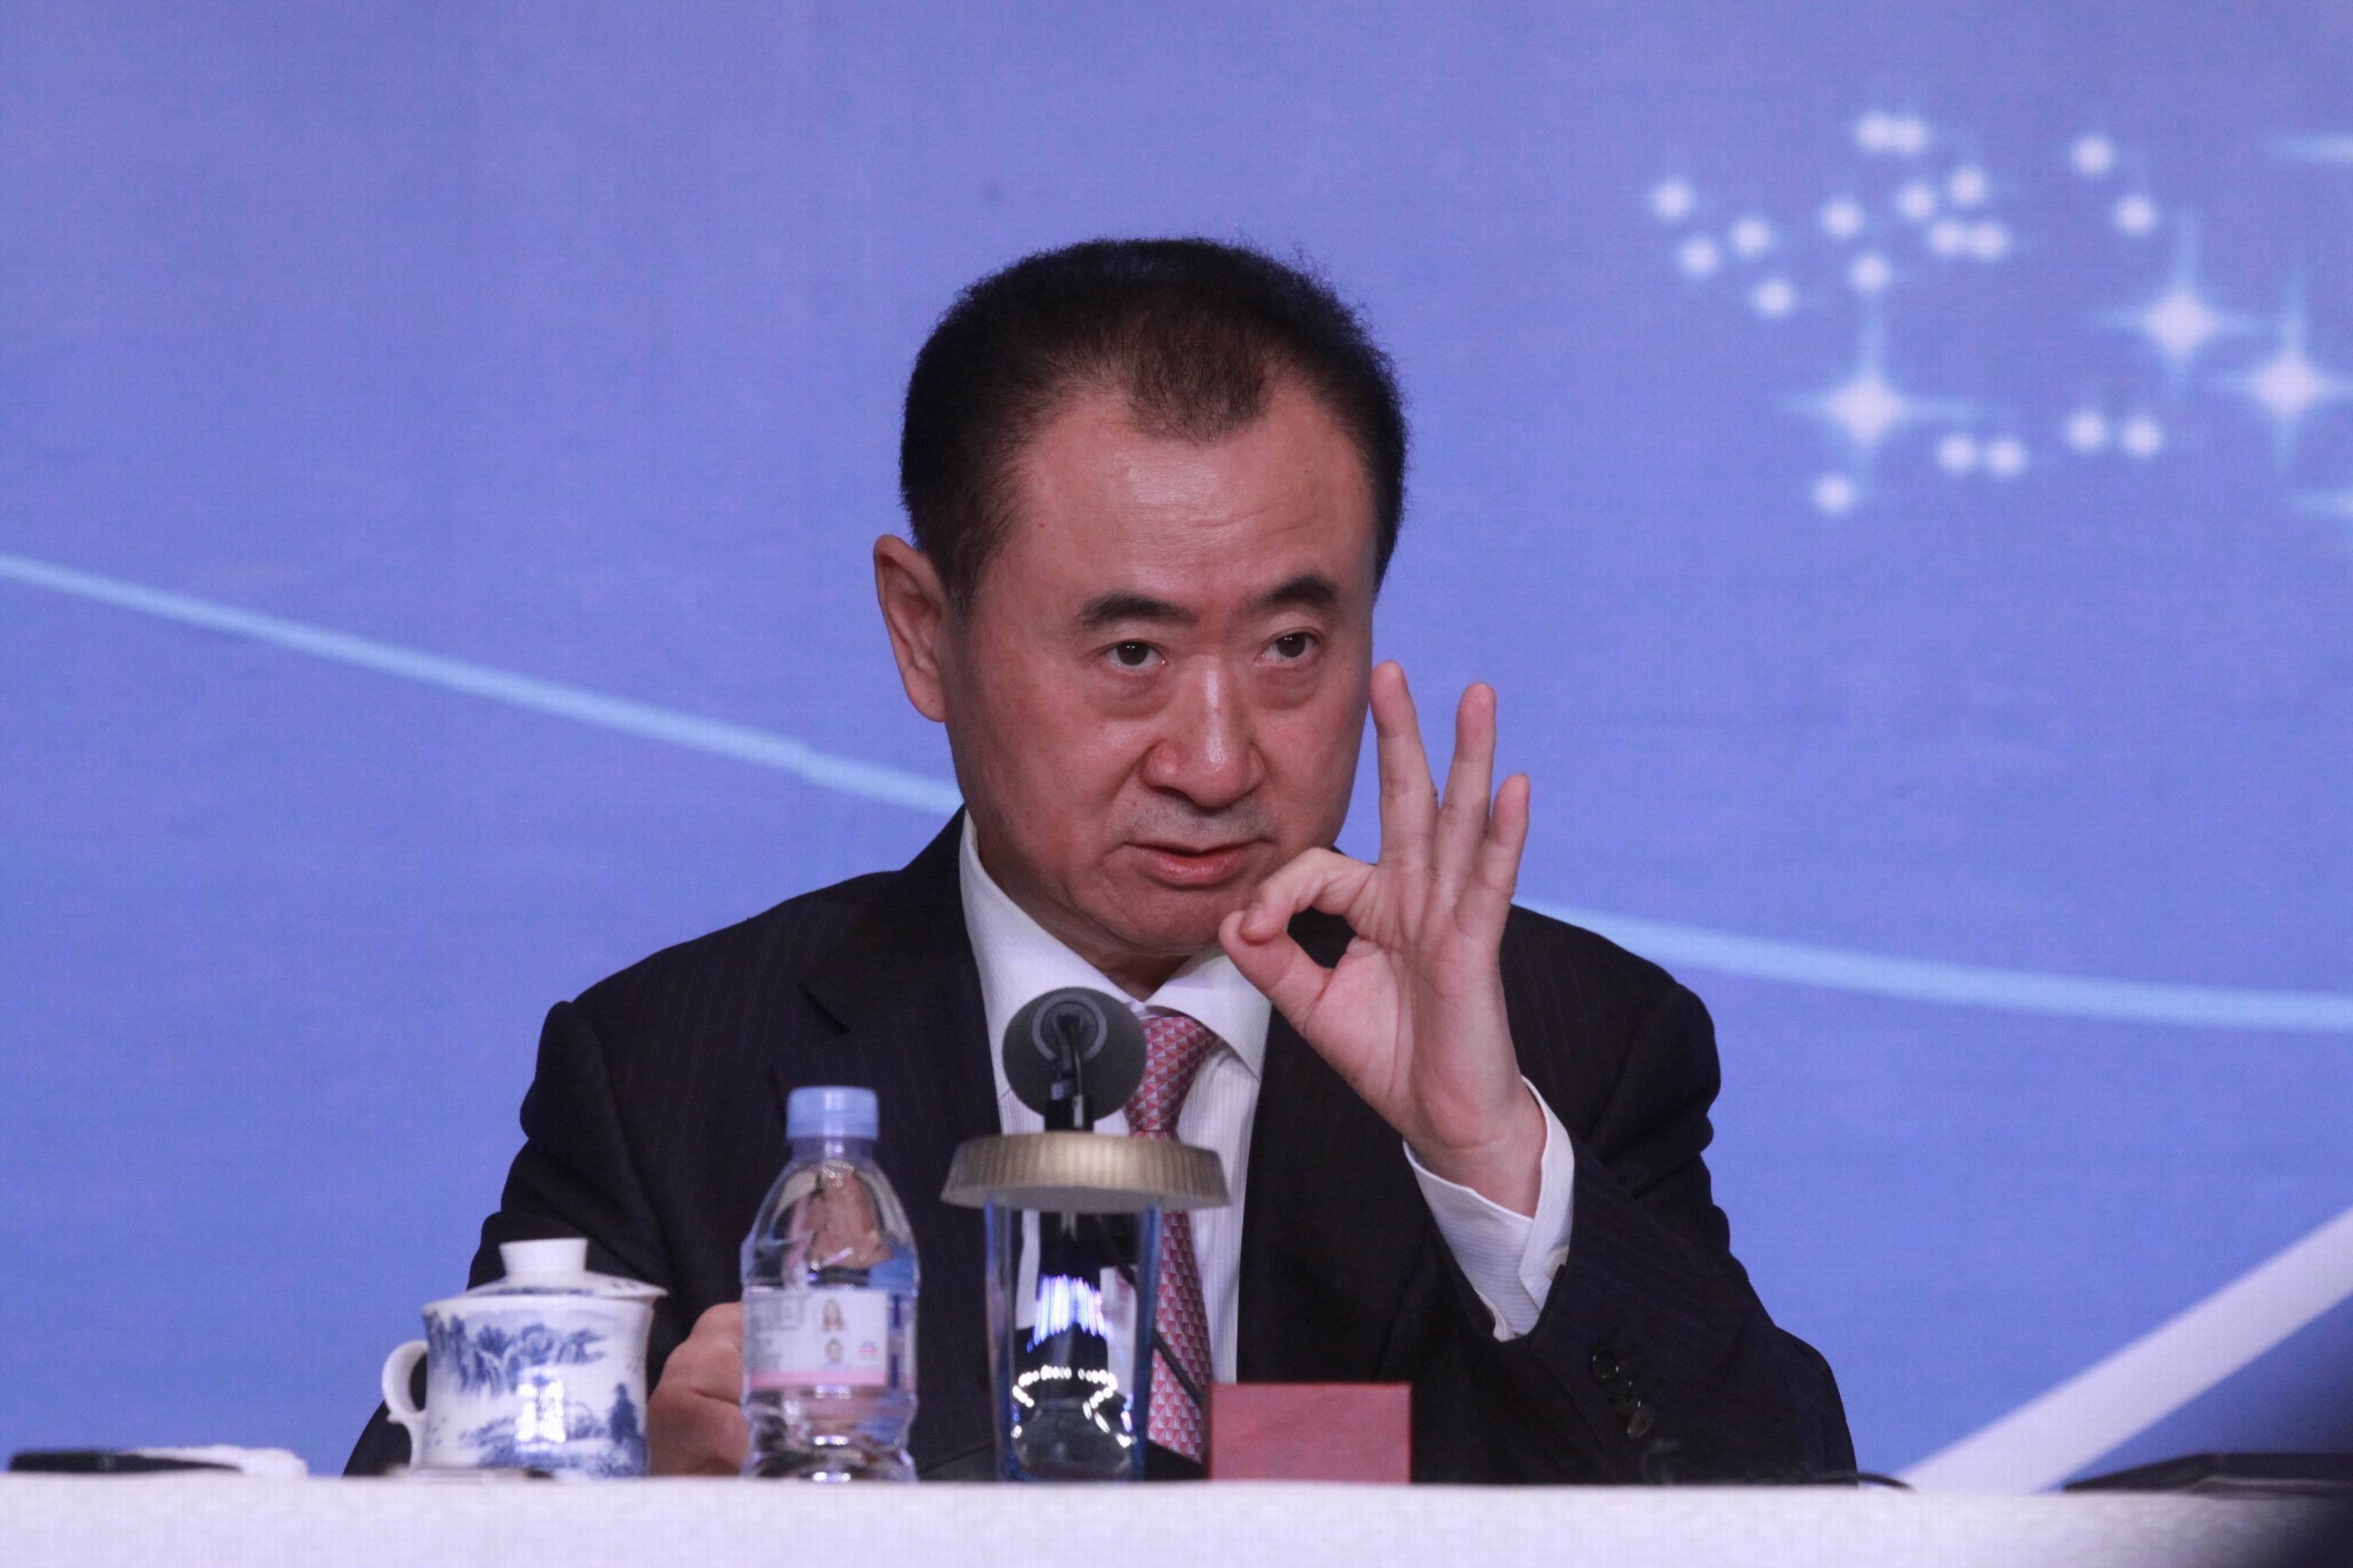 Wang Jianlin, Chairman of Wanda Group, tops the latest Hurun Rich List.